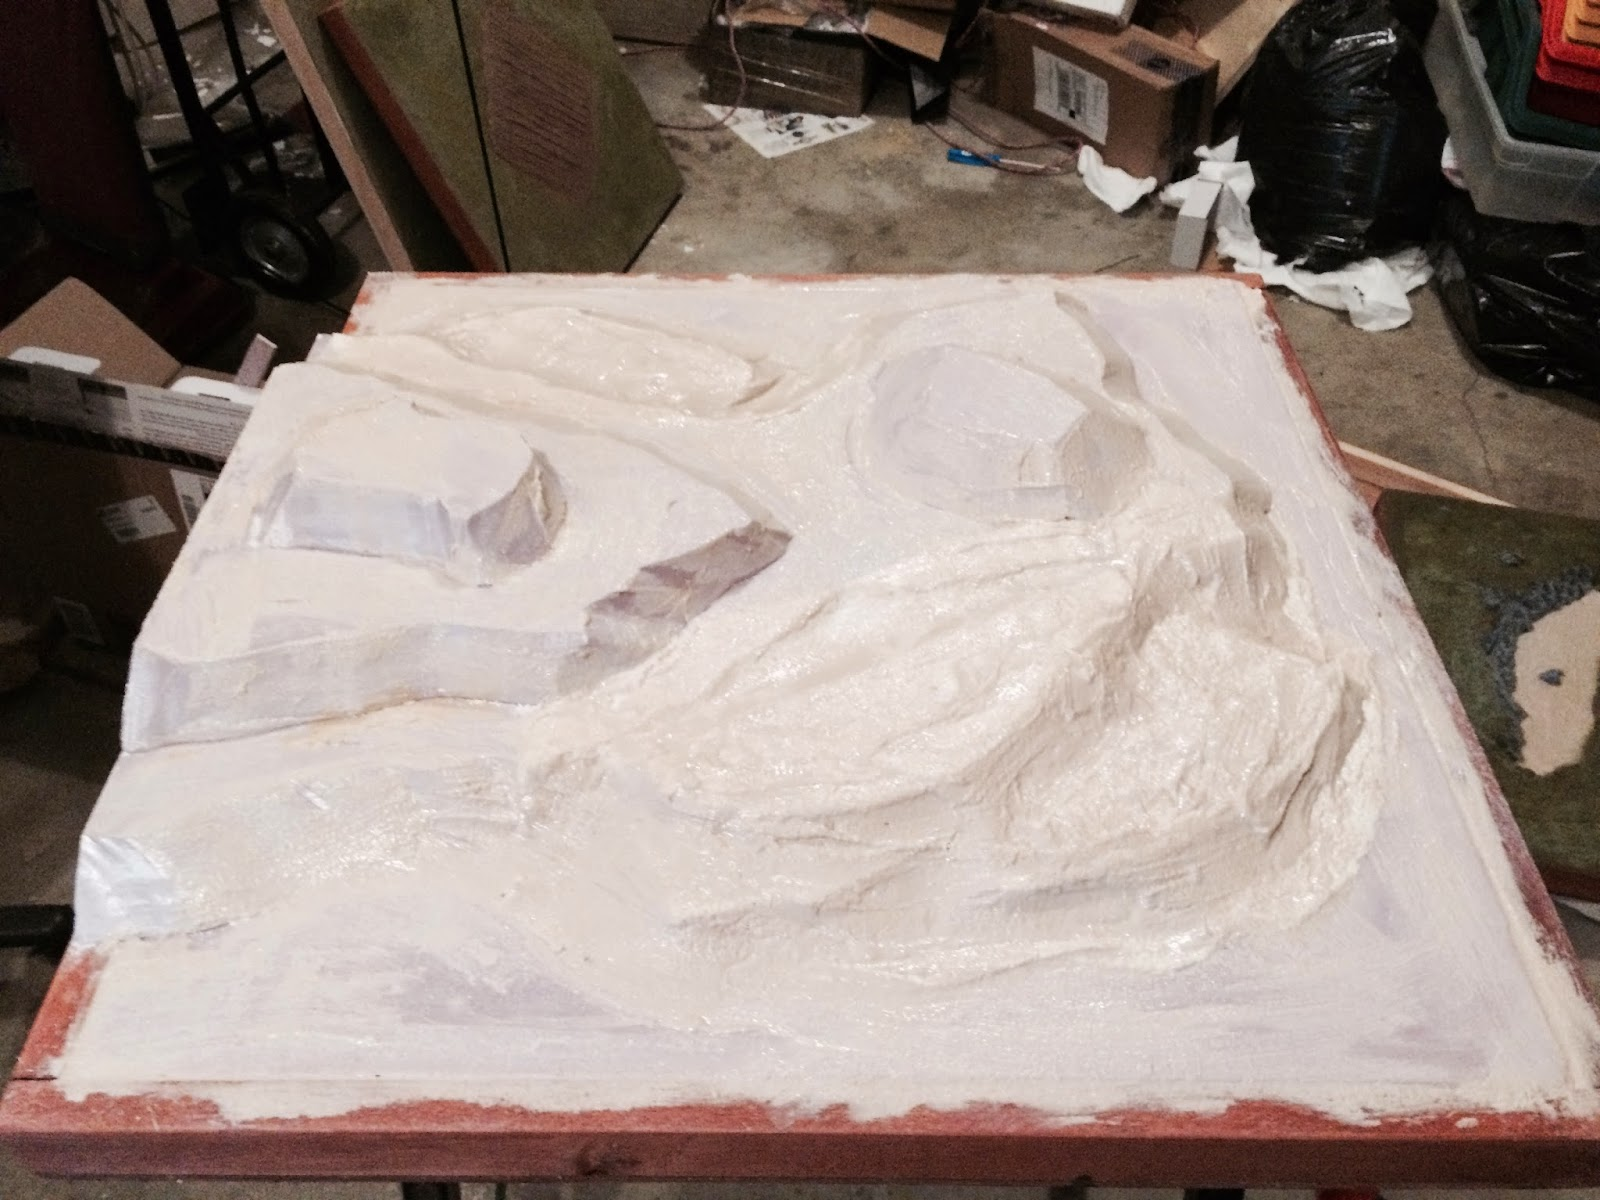 Lair of the uber geek sectional terrain mountains foam